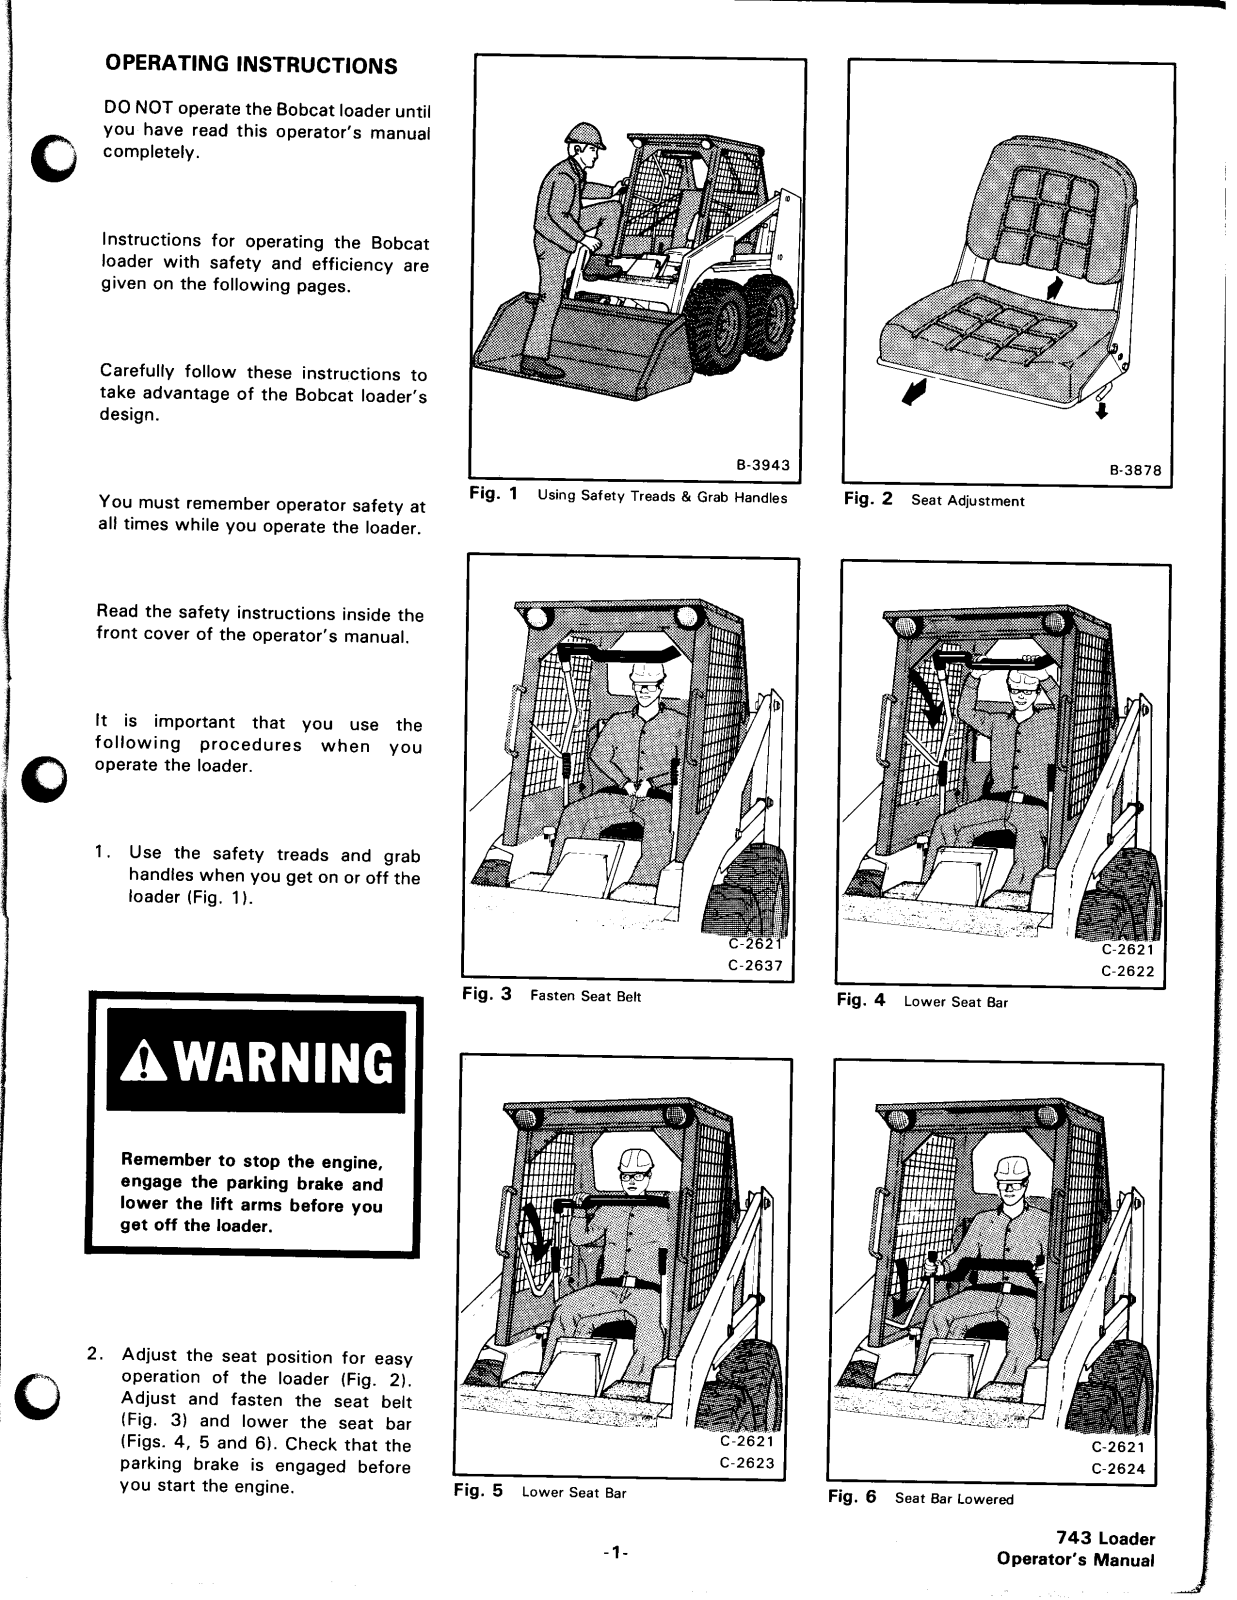 Bobcat 743 Operators Manual